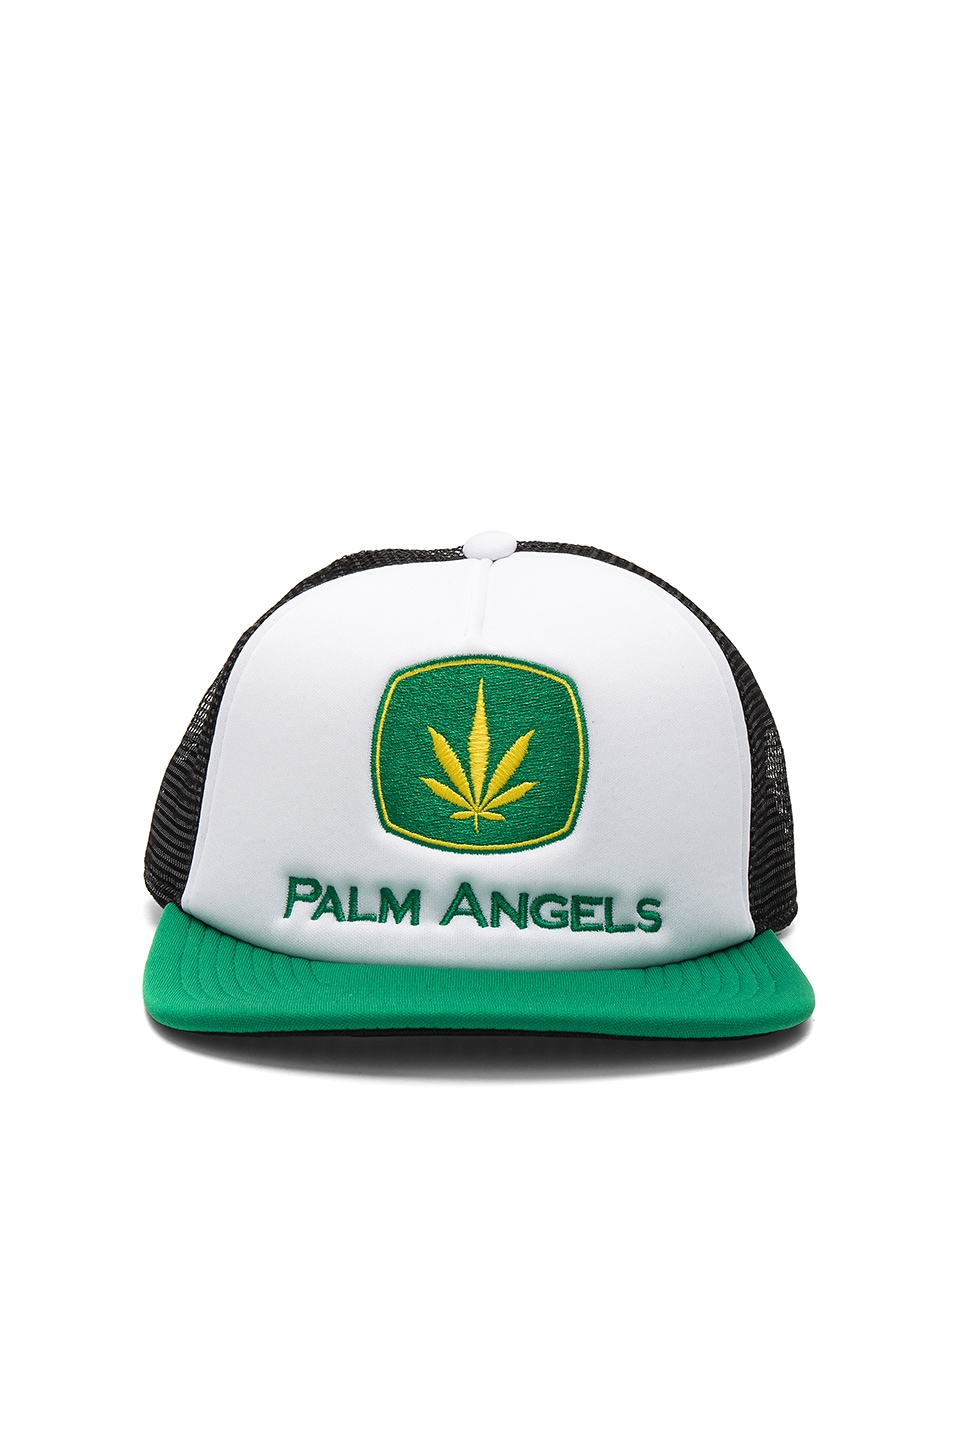 Agrimotor Cap by Palm Angels